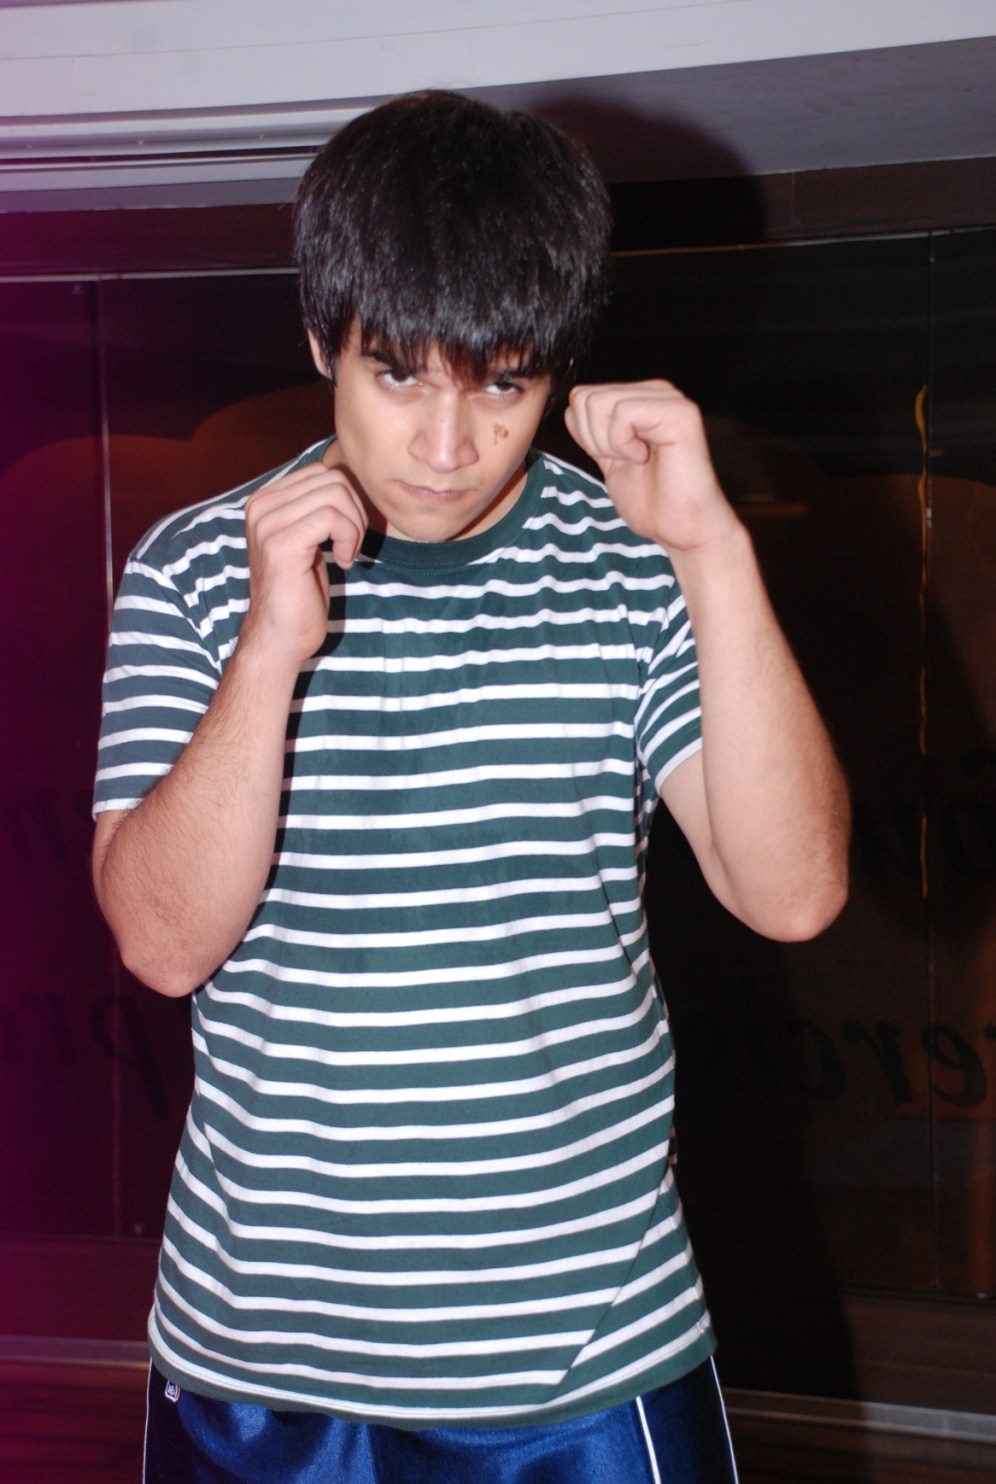 Actor Vivaan Shah promoting The Wolverine workout at Gold's Gym, Bandra2